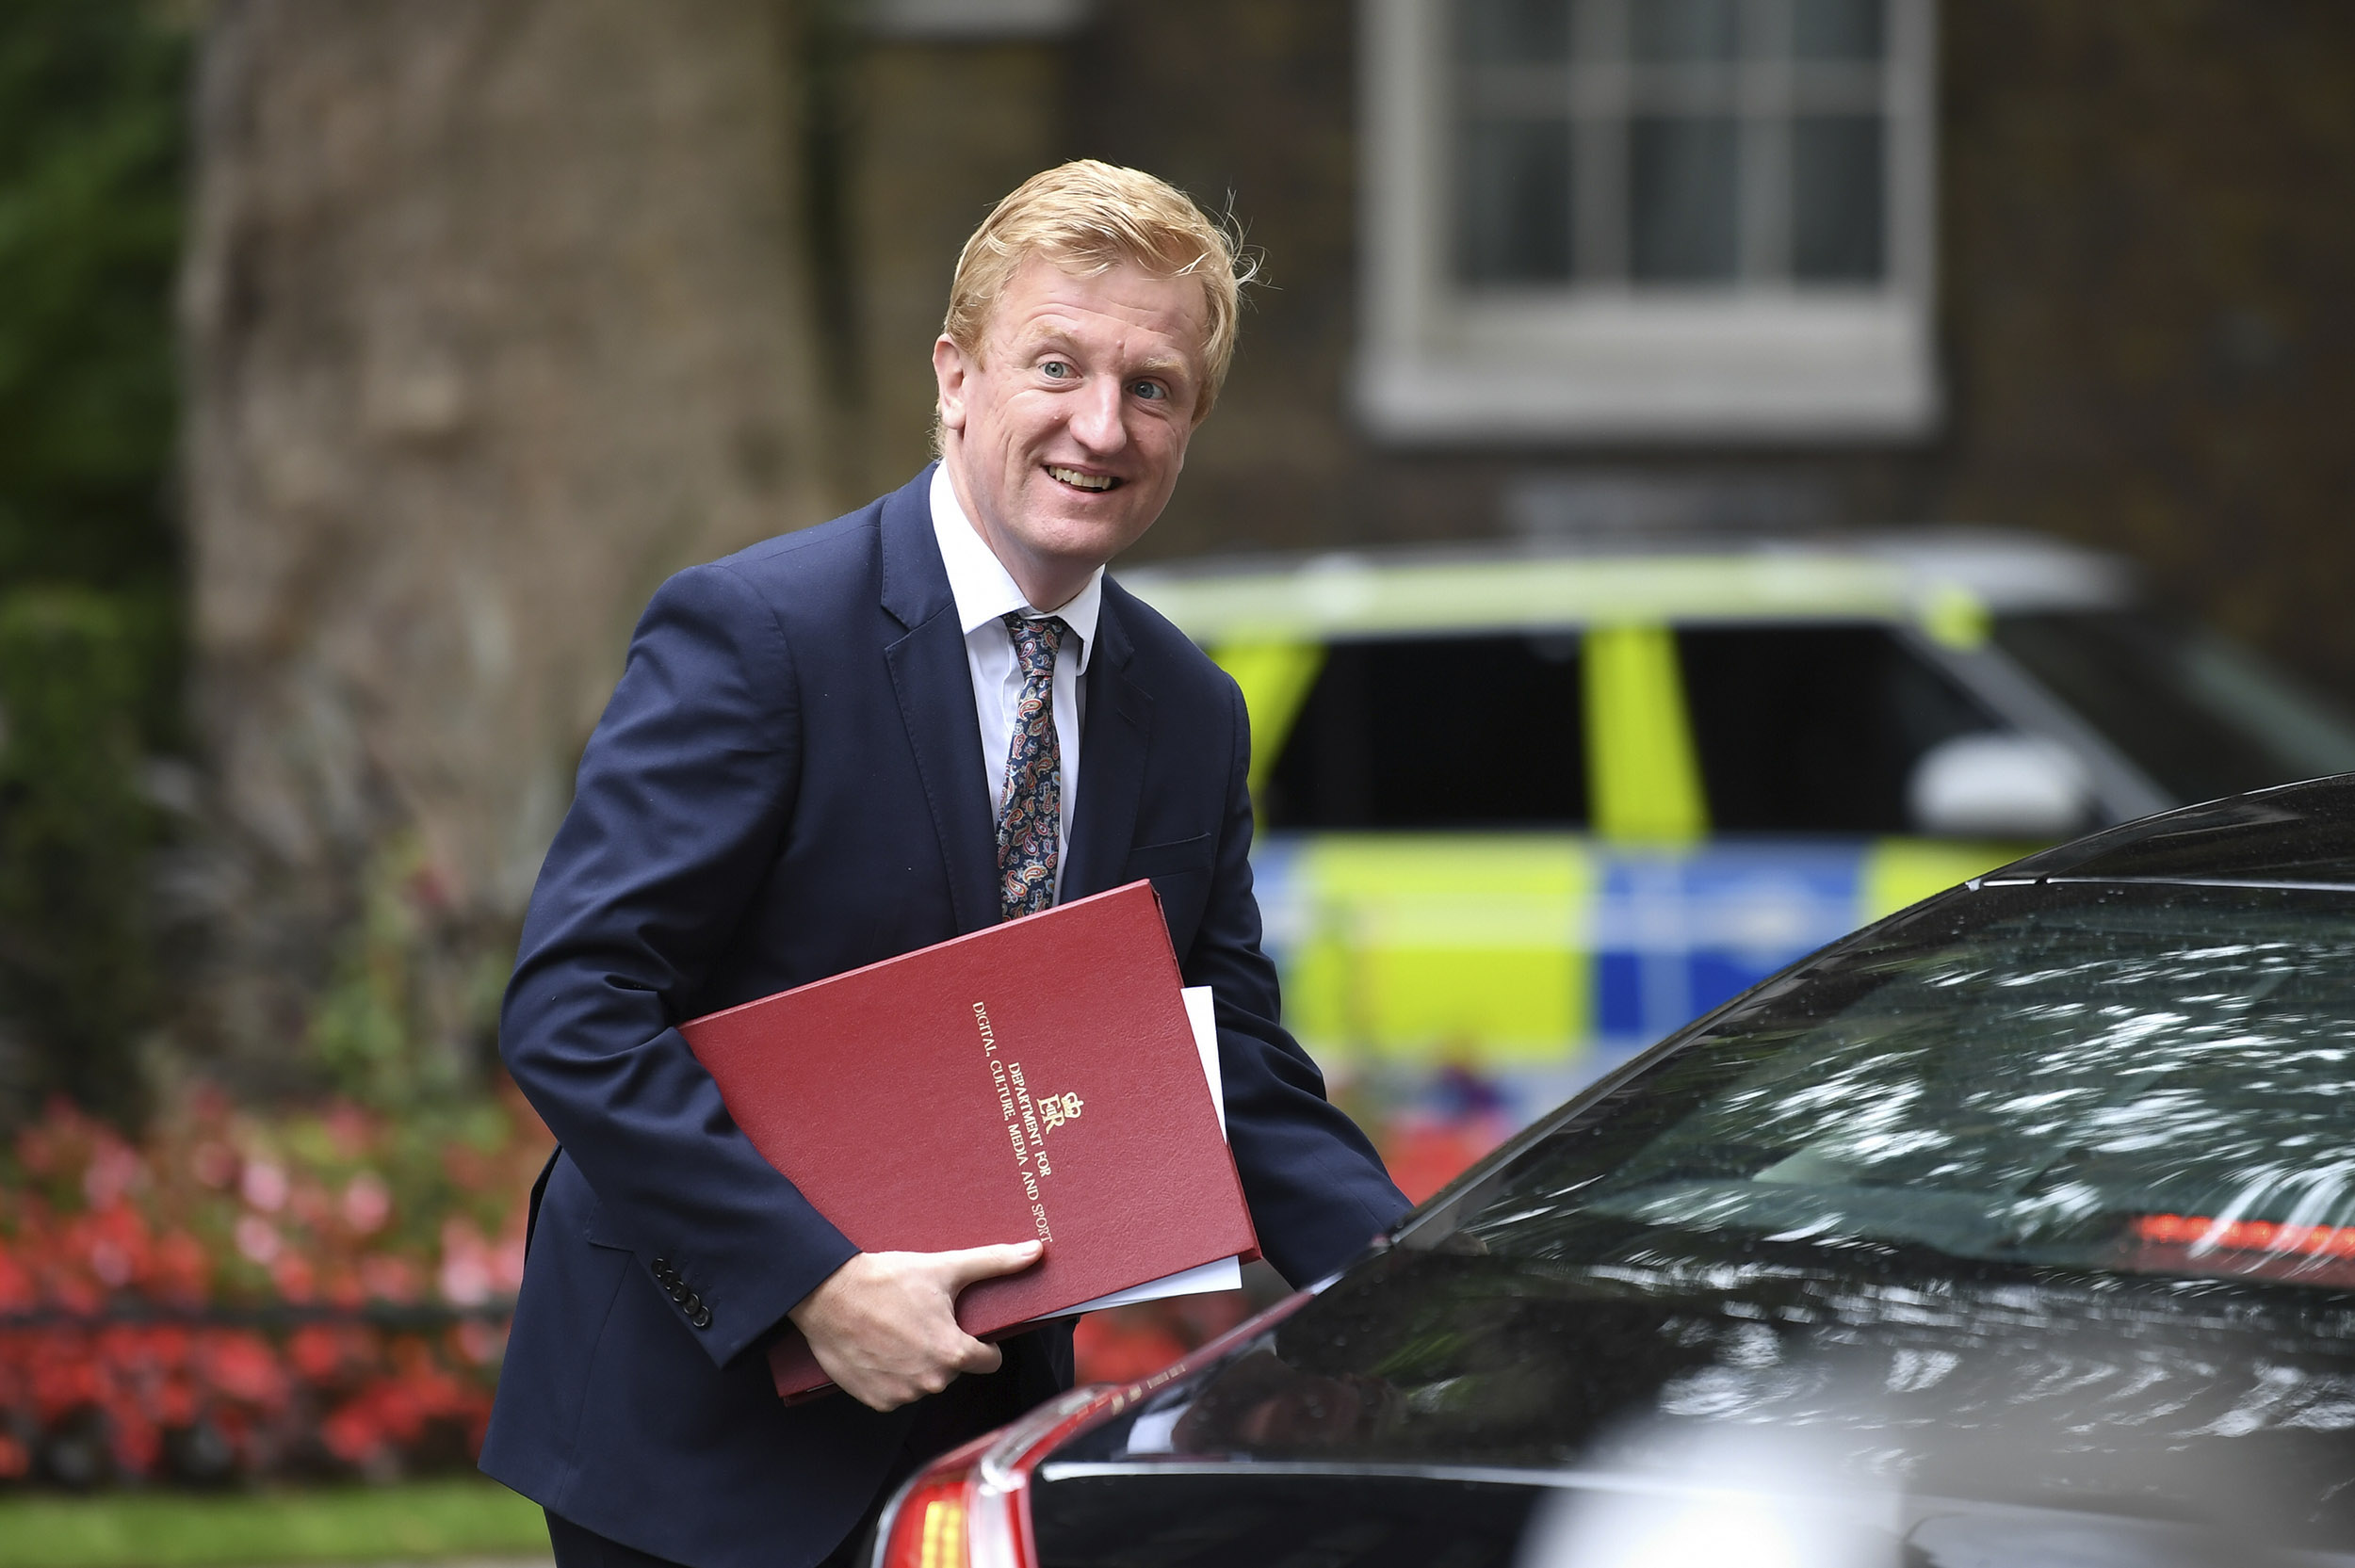 Digital, Culture, Media and Sport Secretary Oliver Dowden departs 10 Downing Street, in London, England, on July 15.